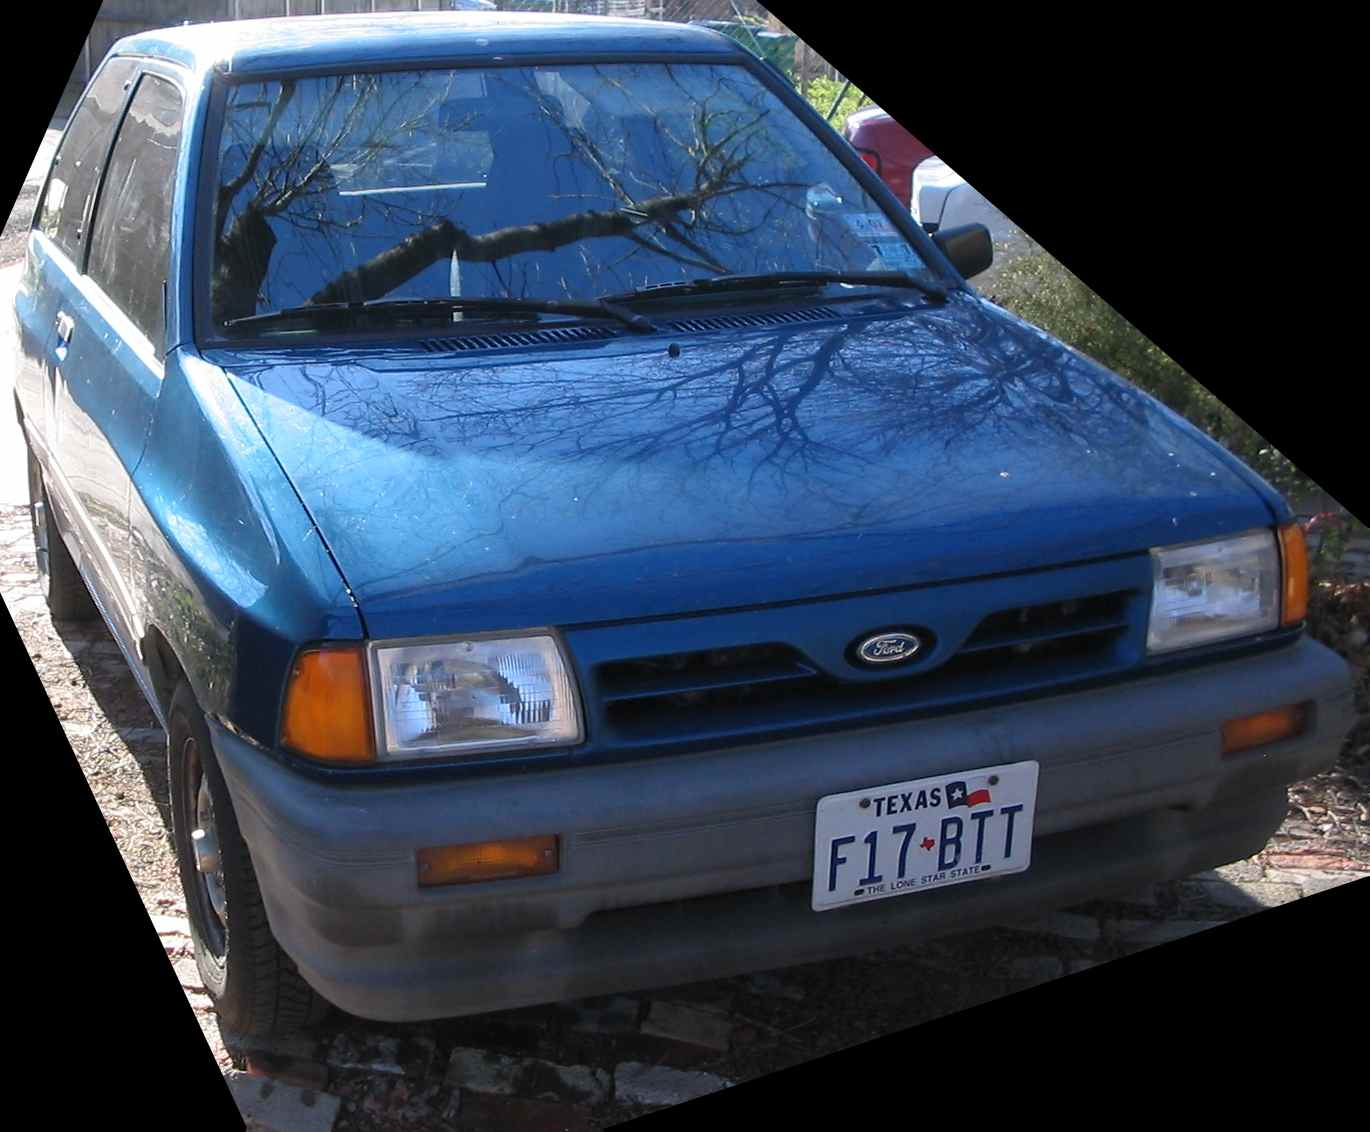 Click image for larger version  Name:festiva.jpg Views:123 Size:96.9 KB ID:263